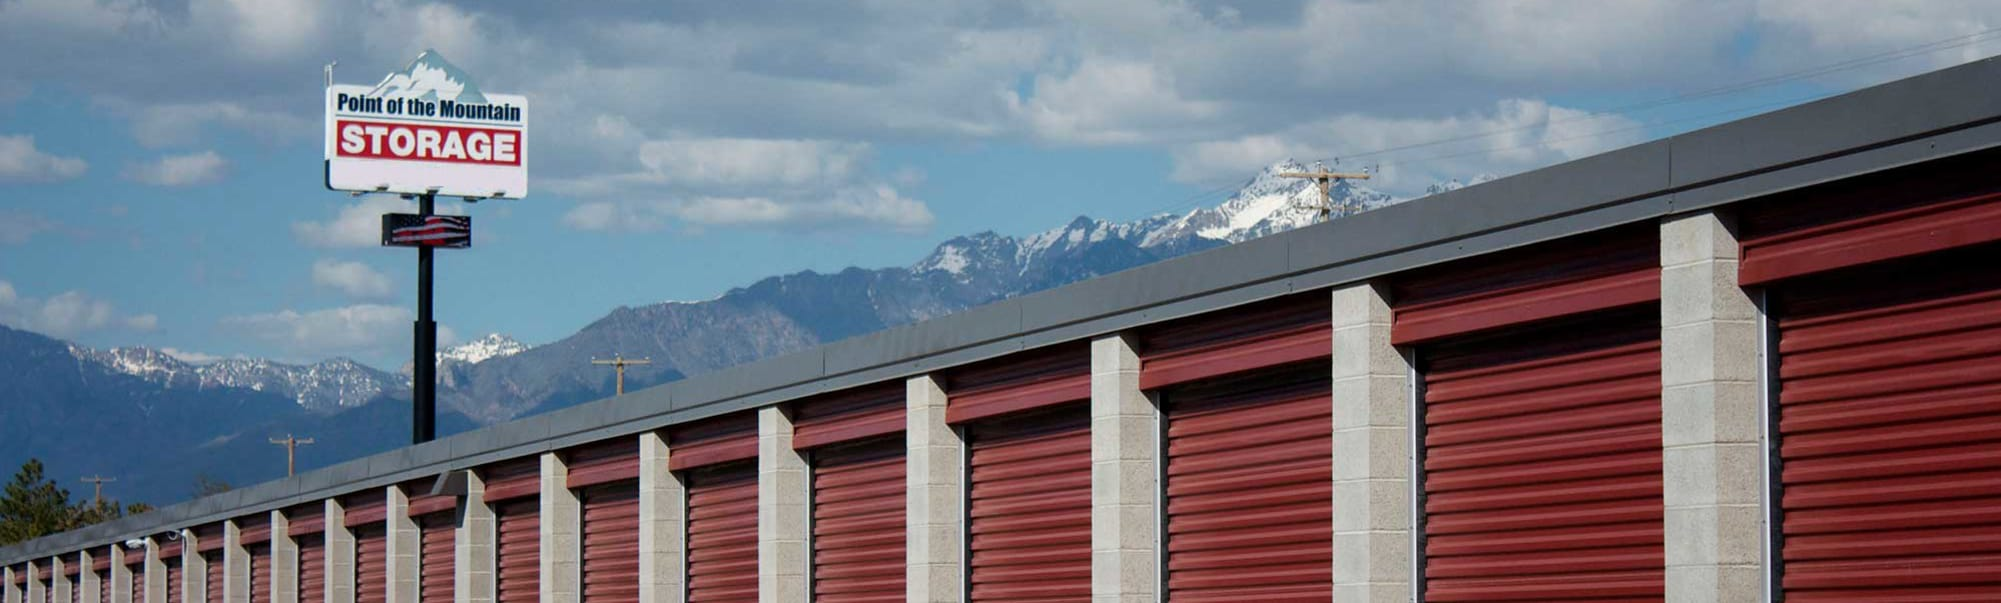 Review our Boat & RV Storage options at Point of the Mountain Storage